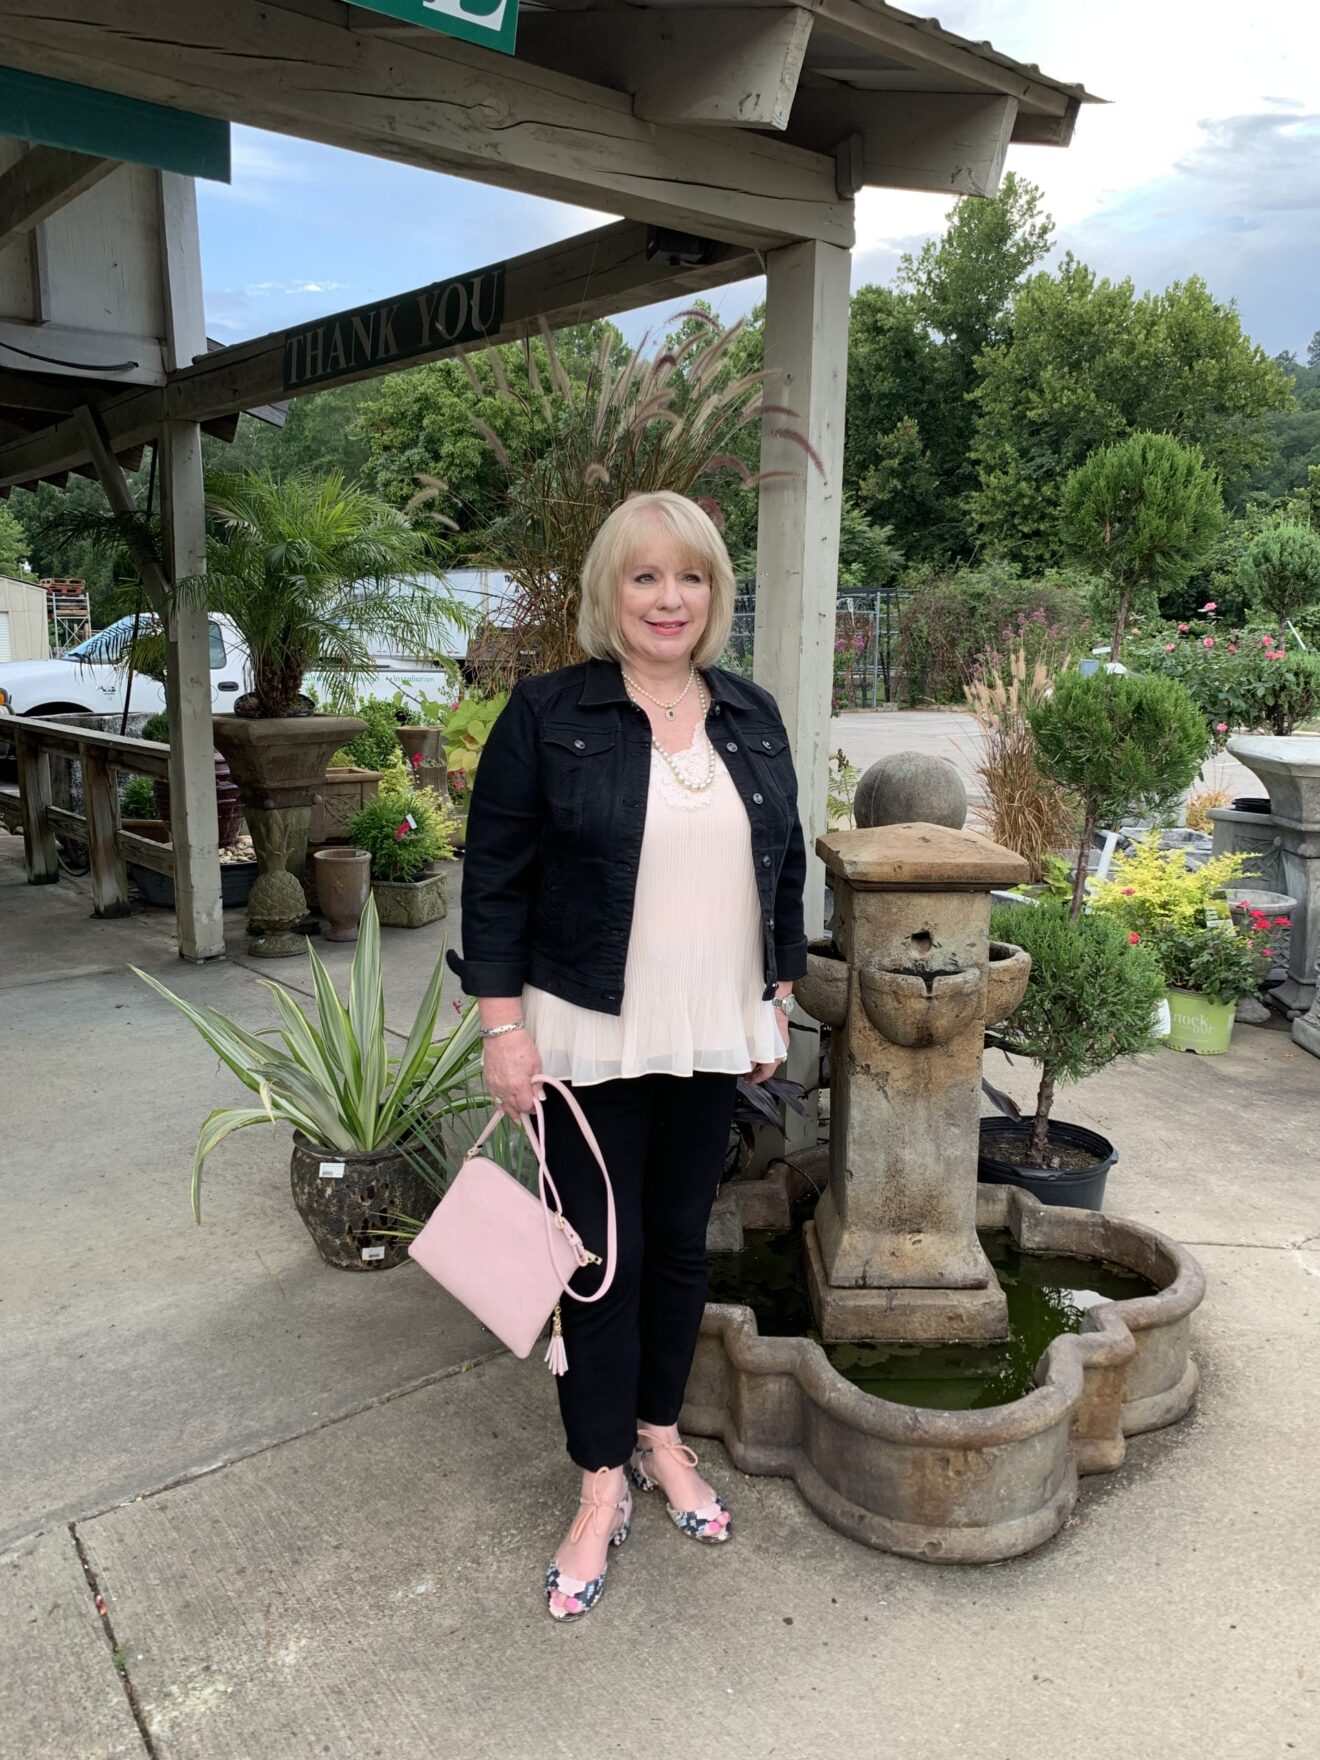 Style Story Interview Classy Colorful Confidence @StyleShennanigans Shannon Holmes Fashion Over 50 60 Confident Classic Chic Outfit with Pearls and Floral Heels Story Behind The Cloth scaled